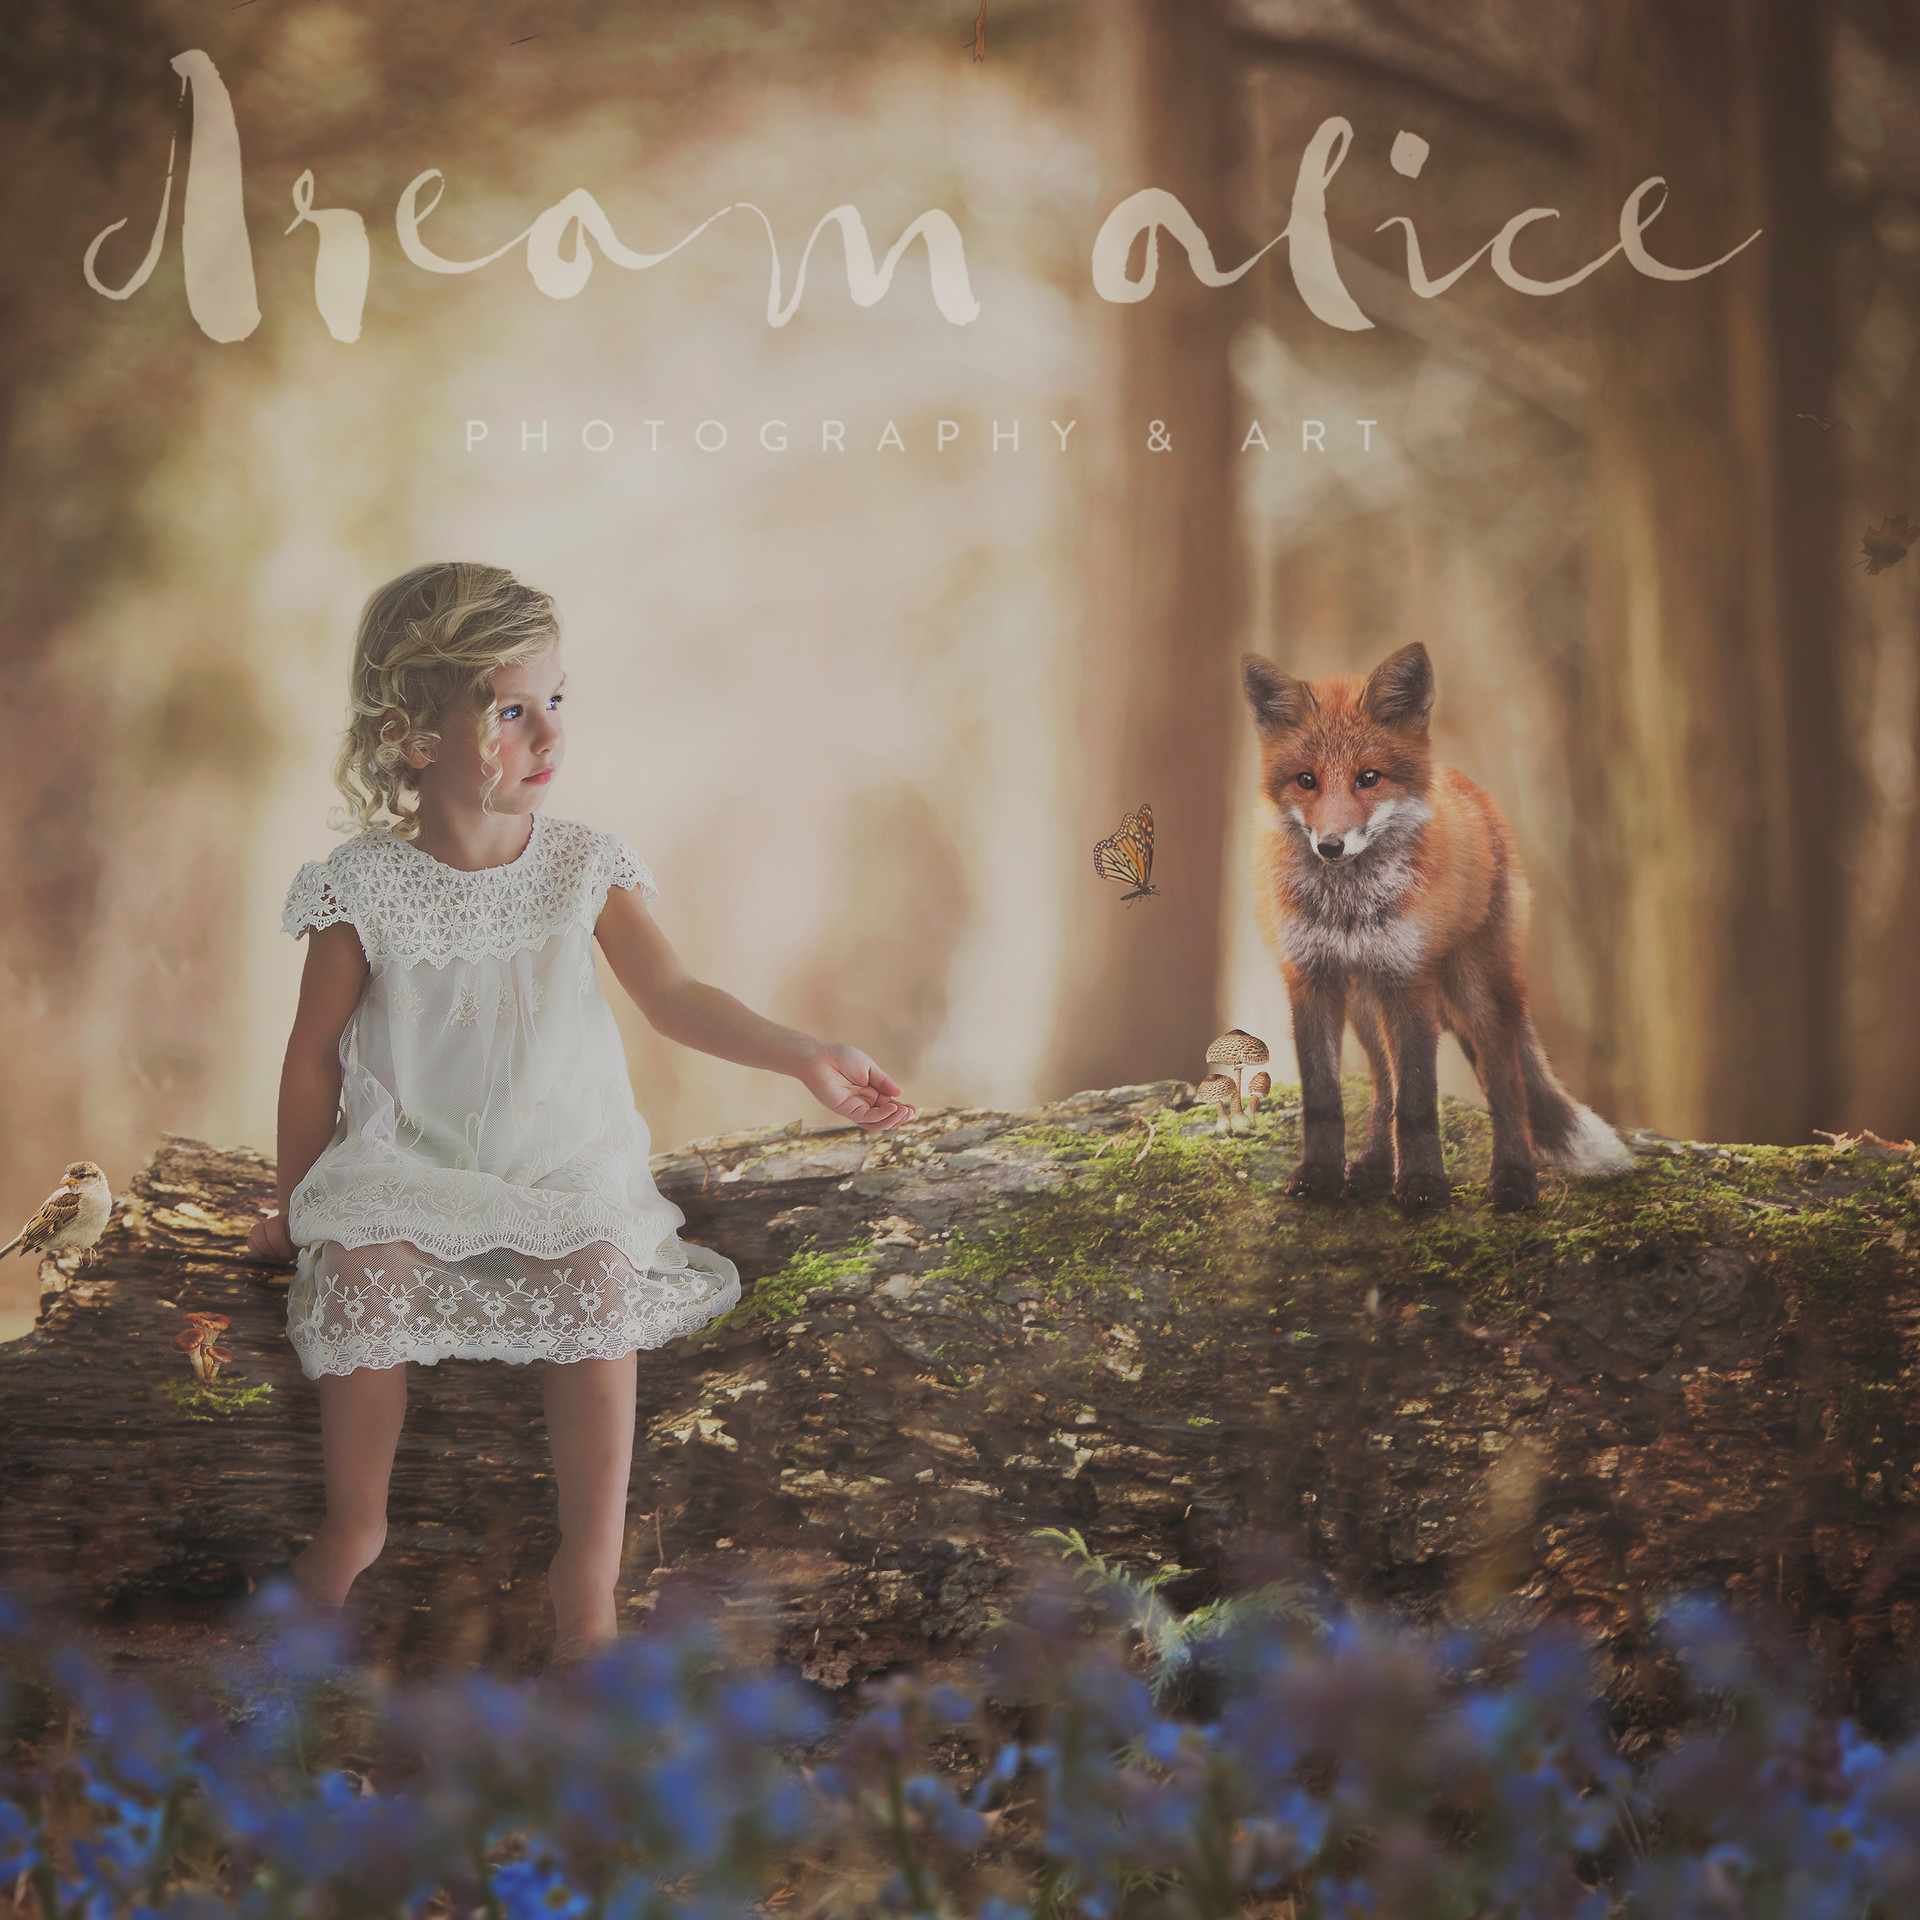 Forest Friends. Creative Children's Photography fantasy photoshoot, Dream Alice Photography & Art, Gold Coast